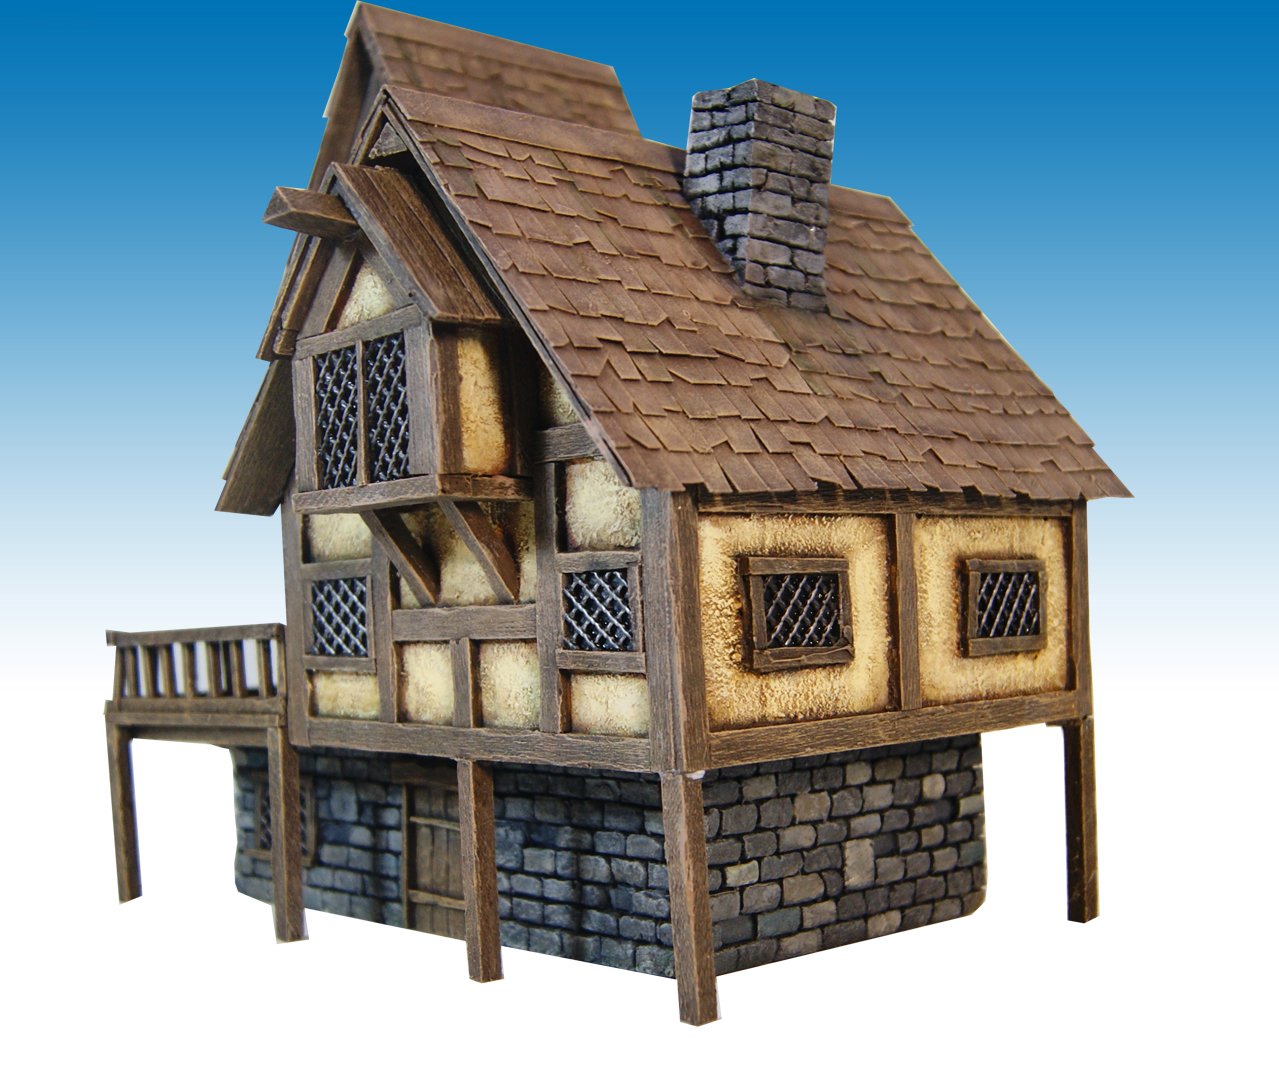 Miniature warfare medieval house nr 2 finished House build